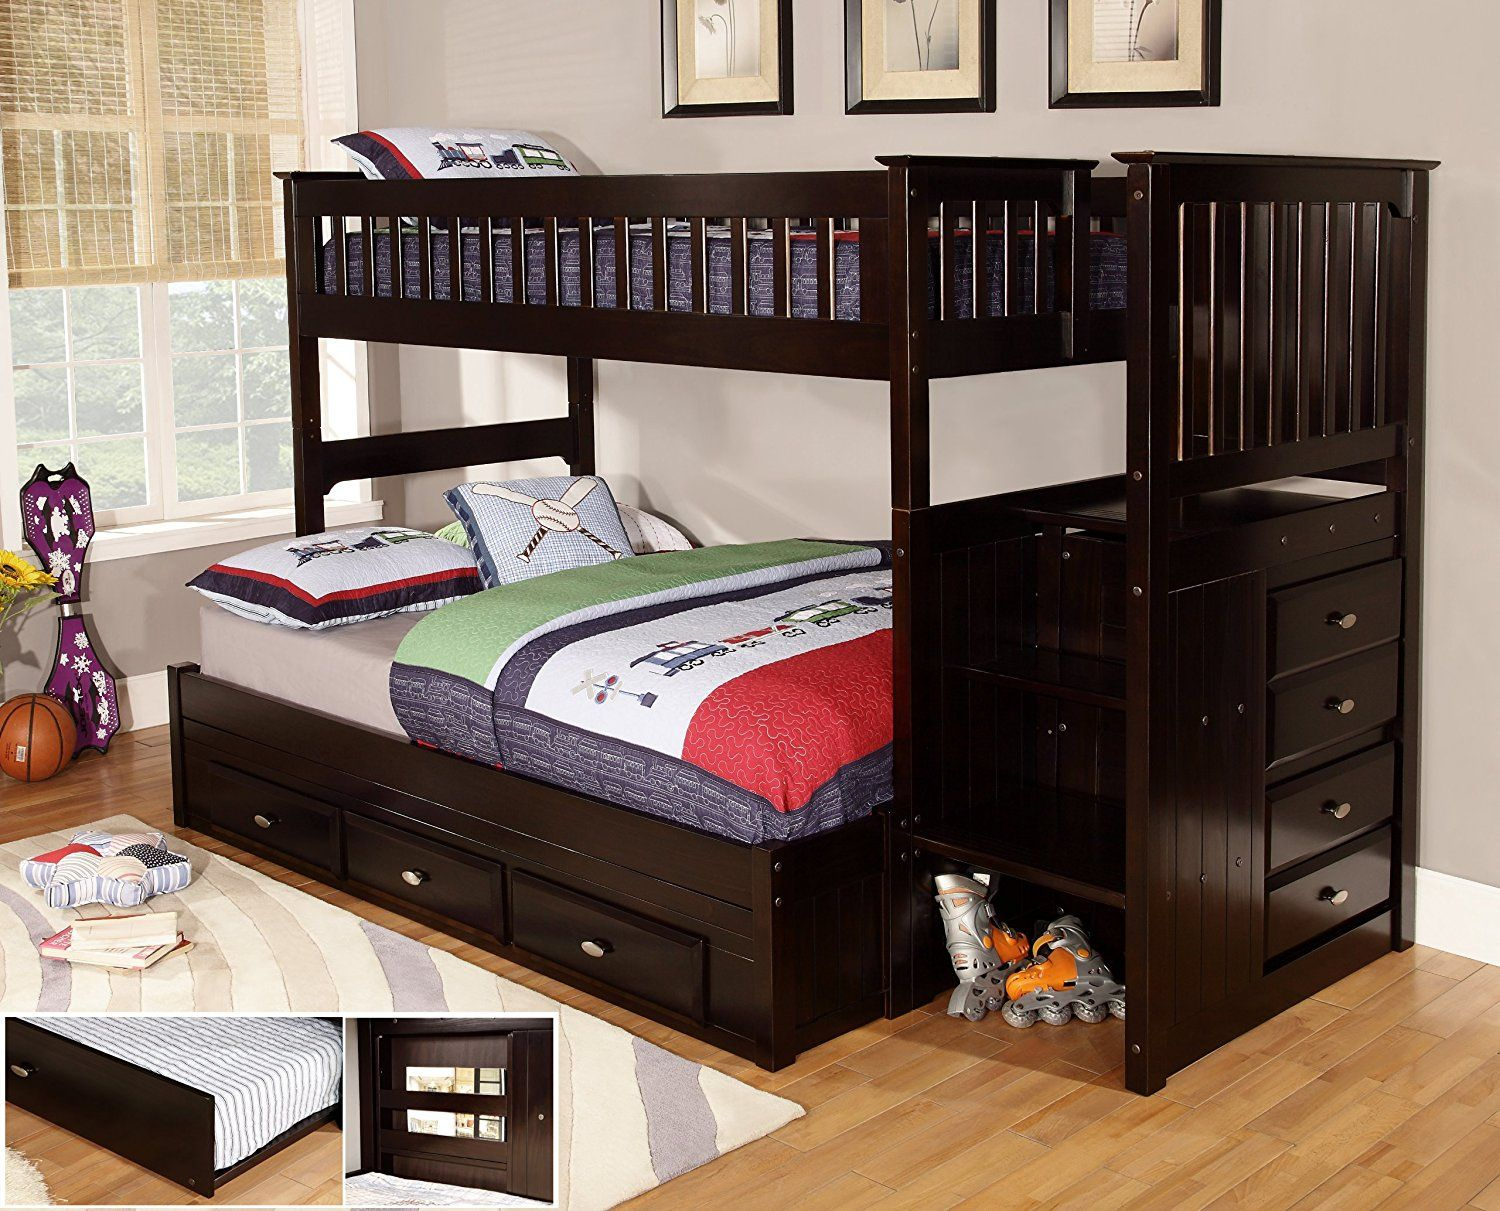 Loft bed with desk ideas Twin Over Full Bunk Bed with Desk  Desk Wall Art Ideas Check more